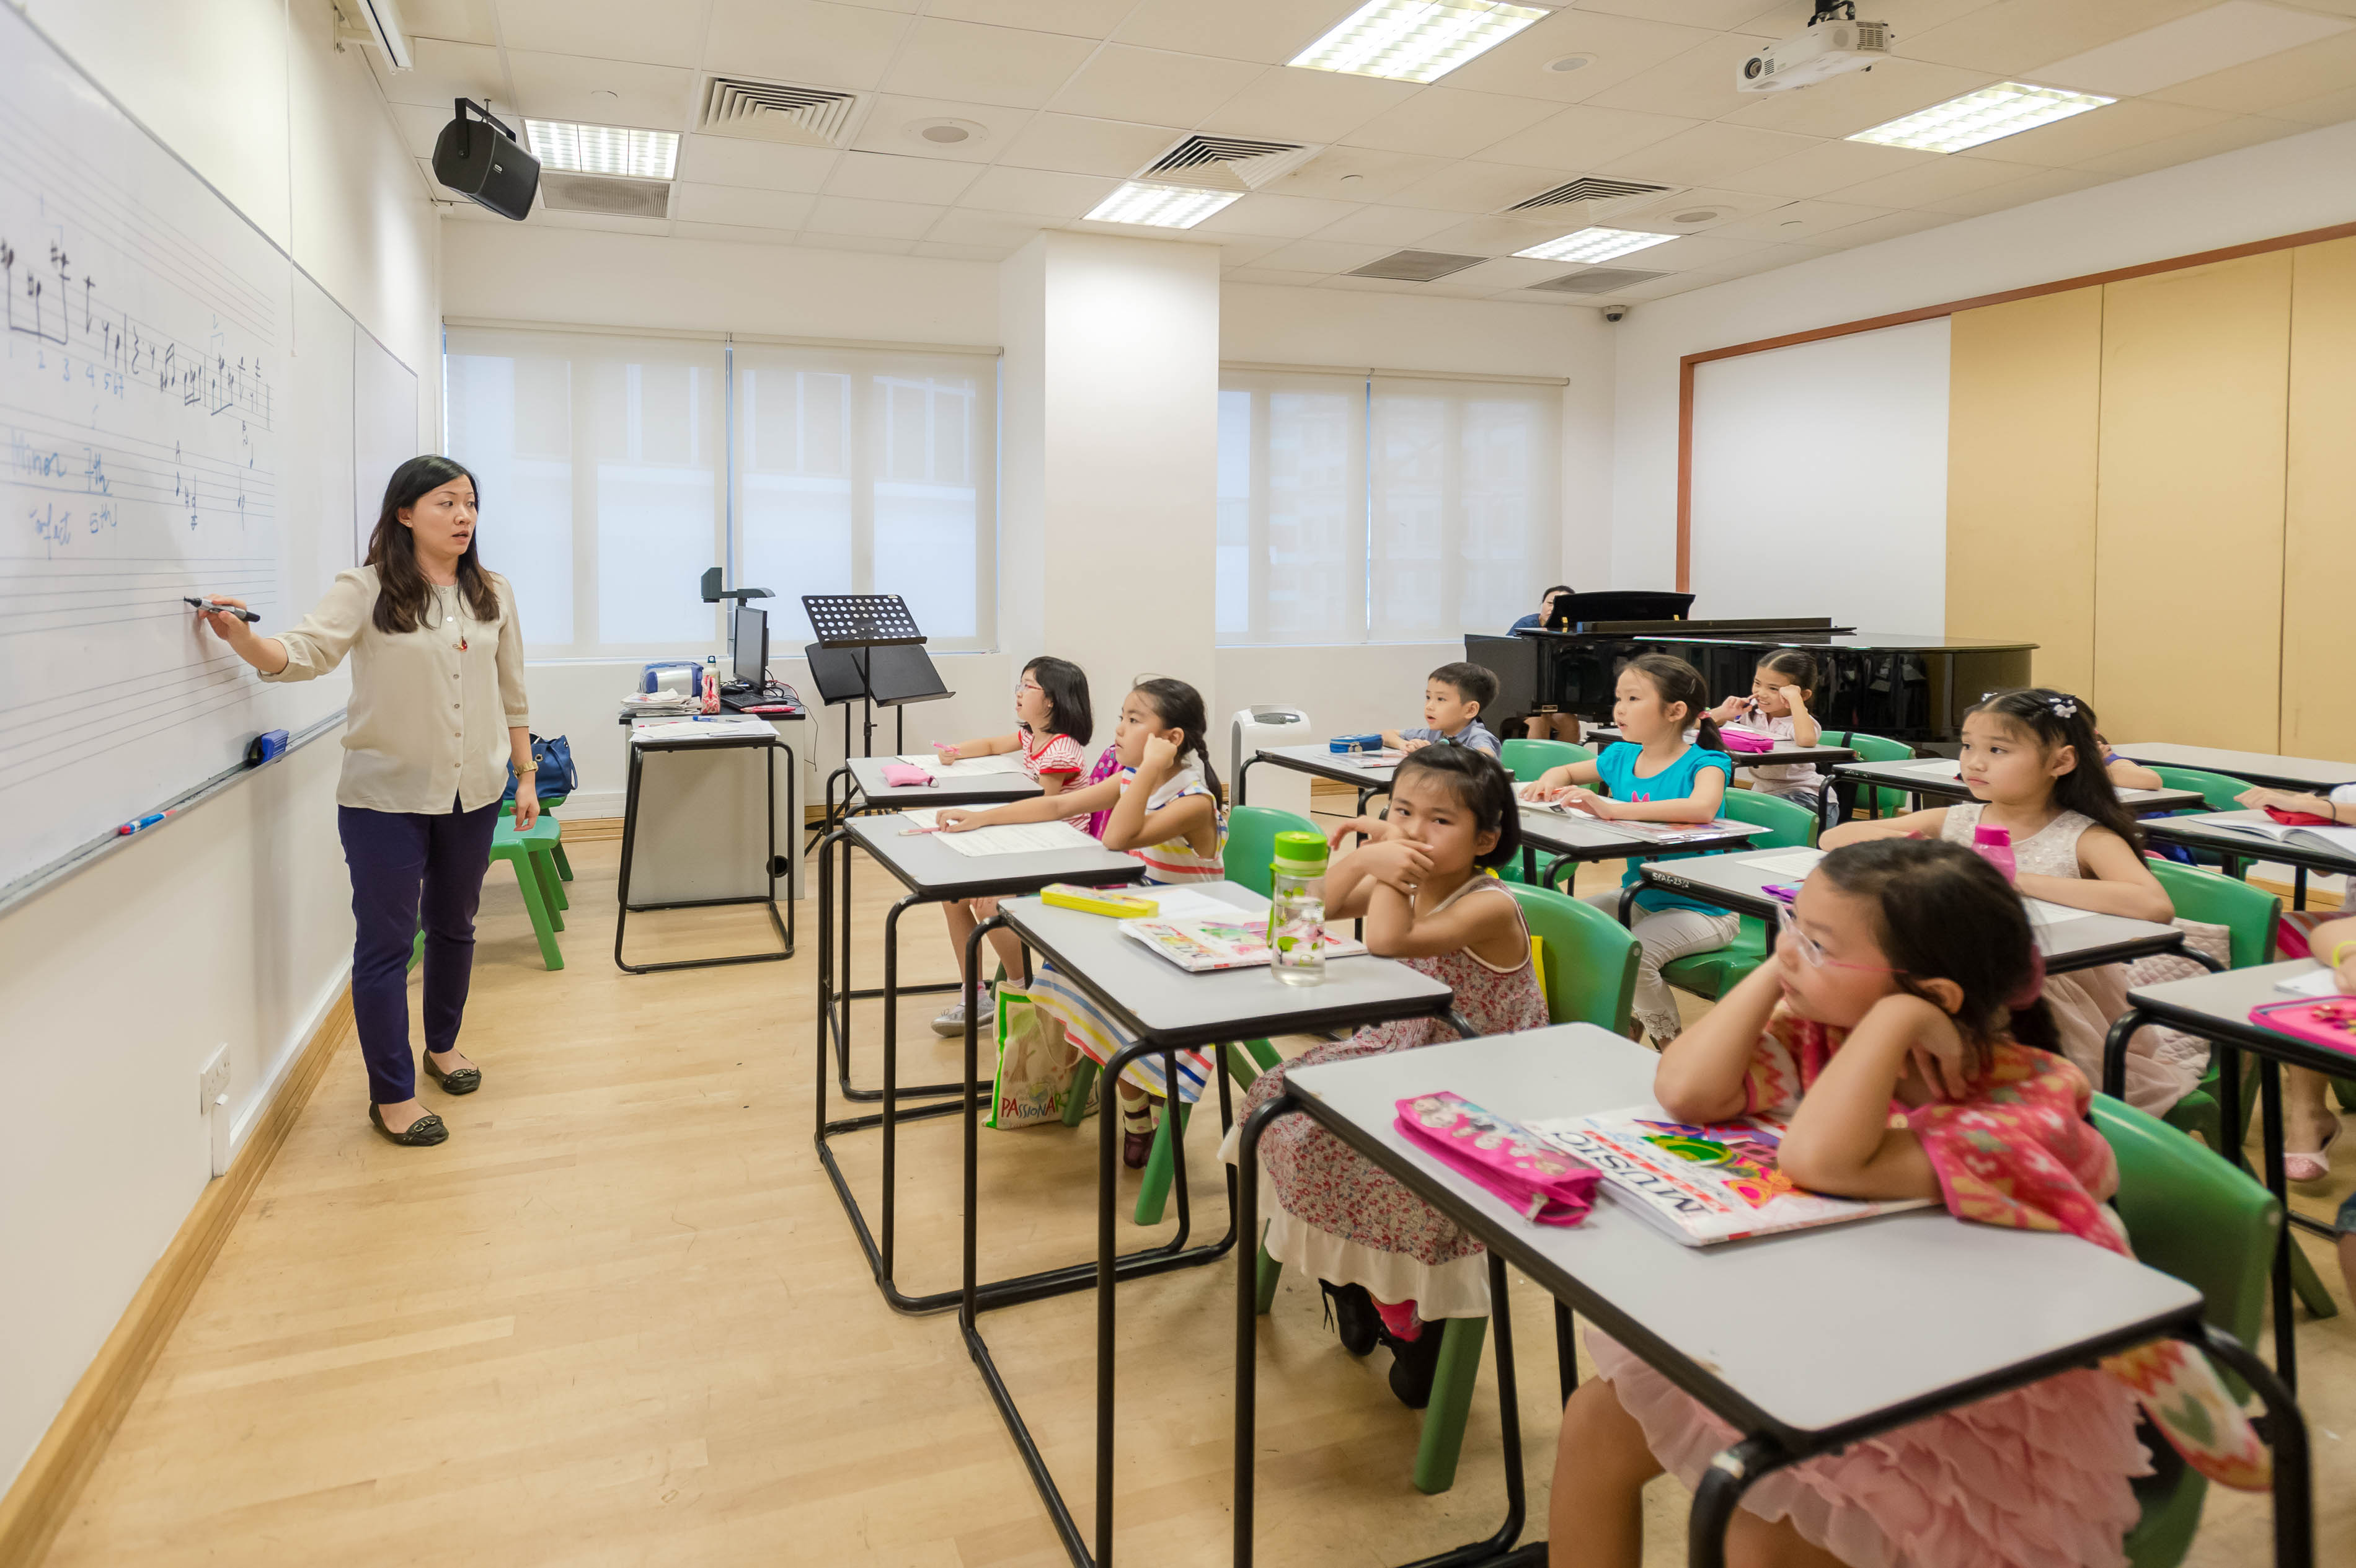 Children attending a class room in Singapore.